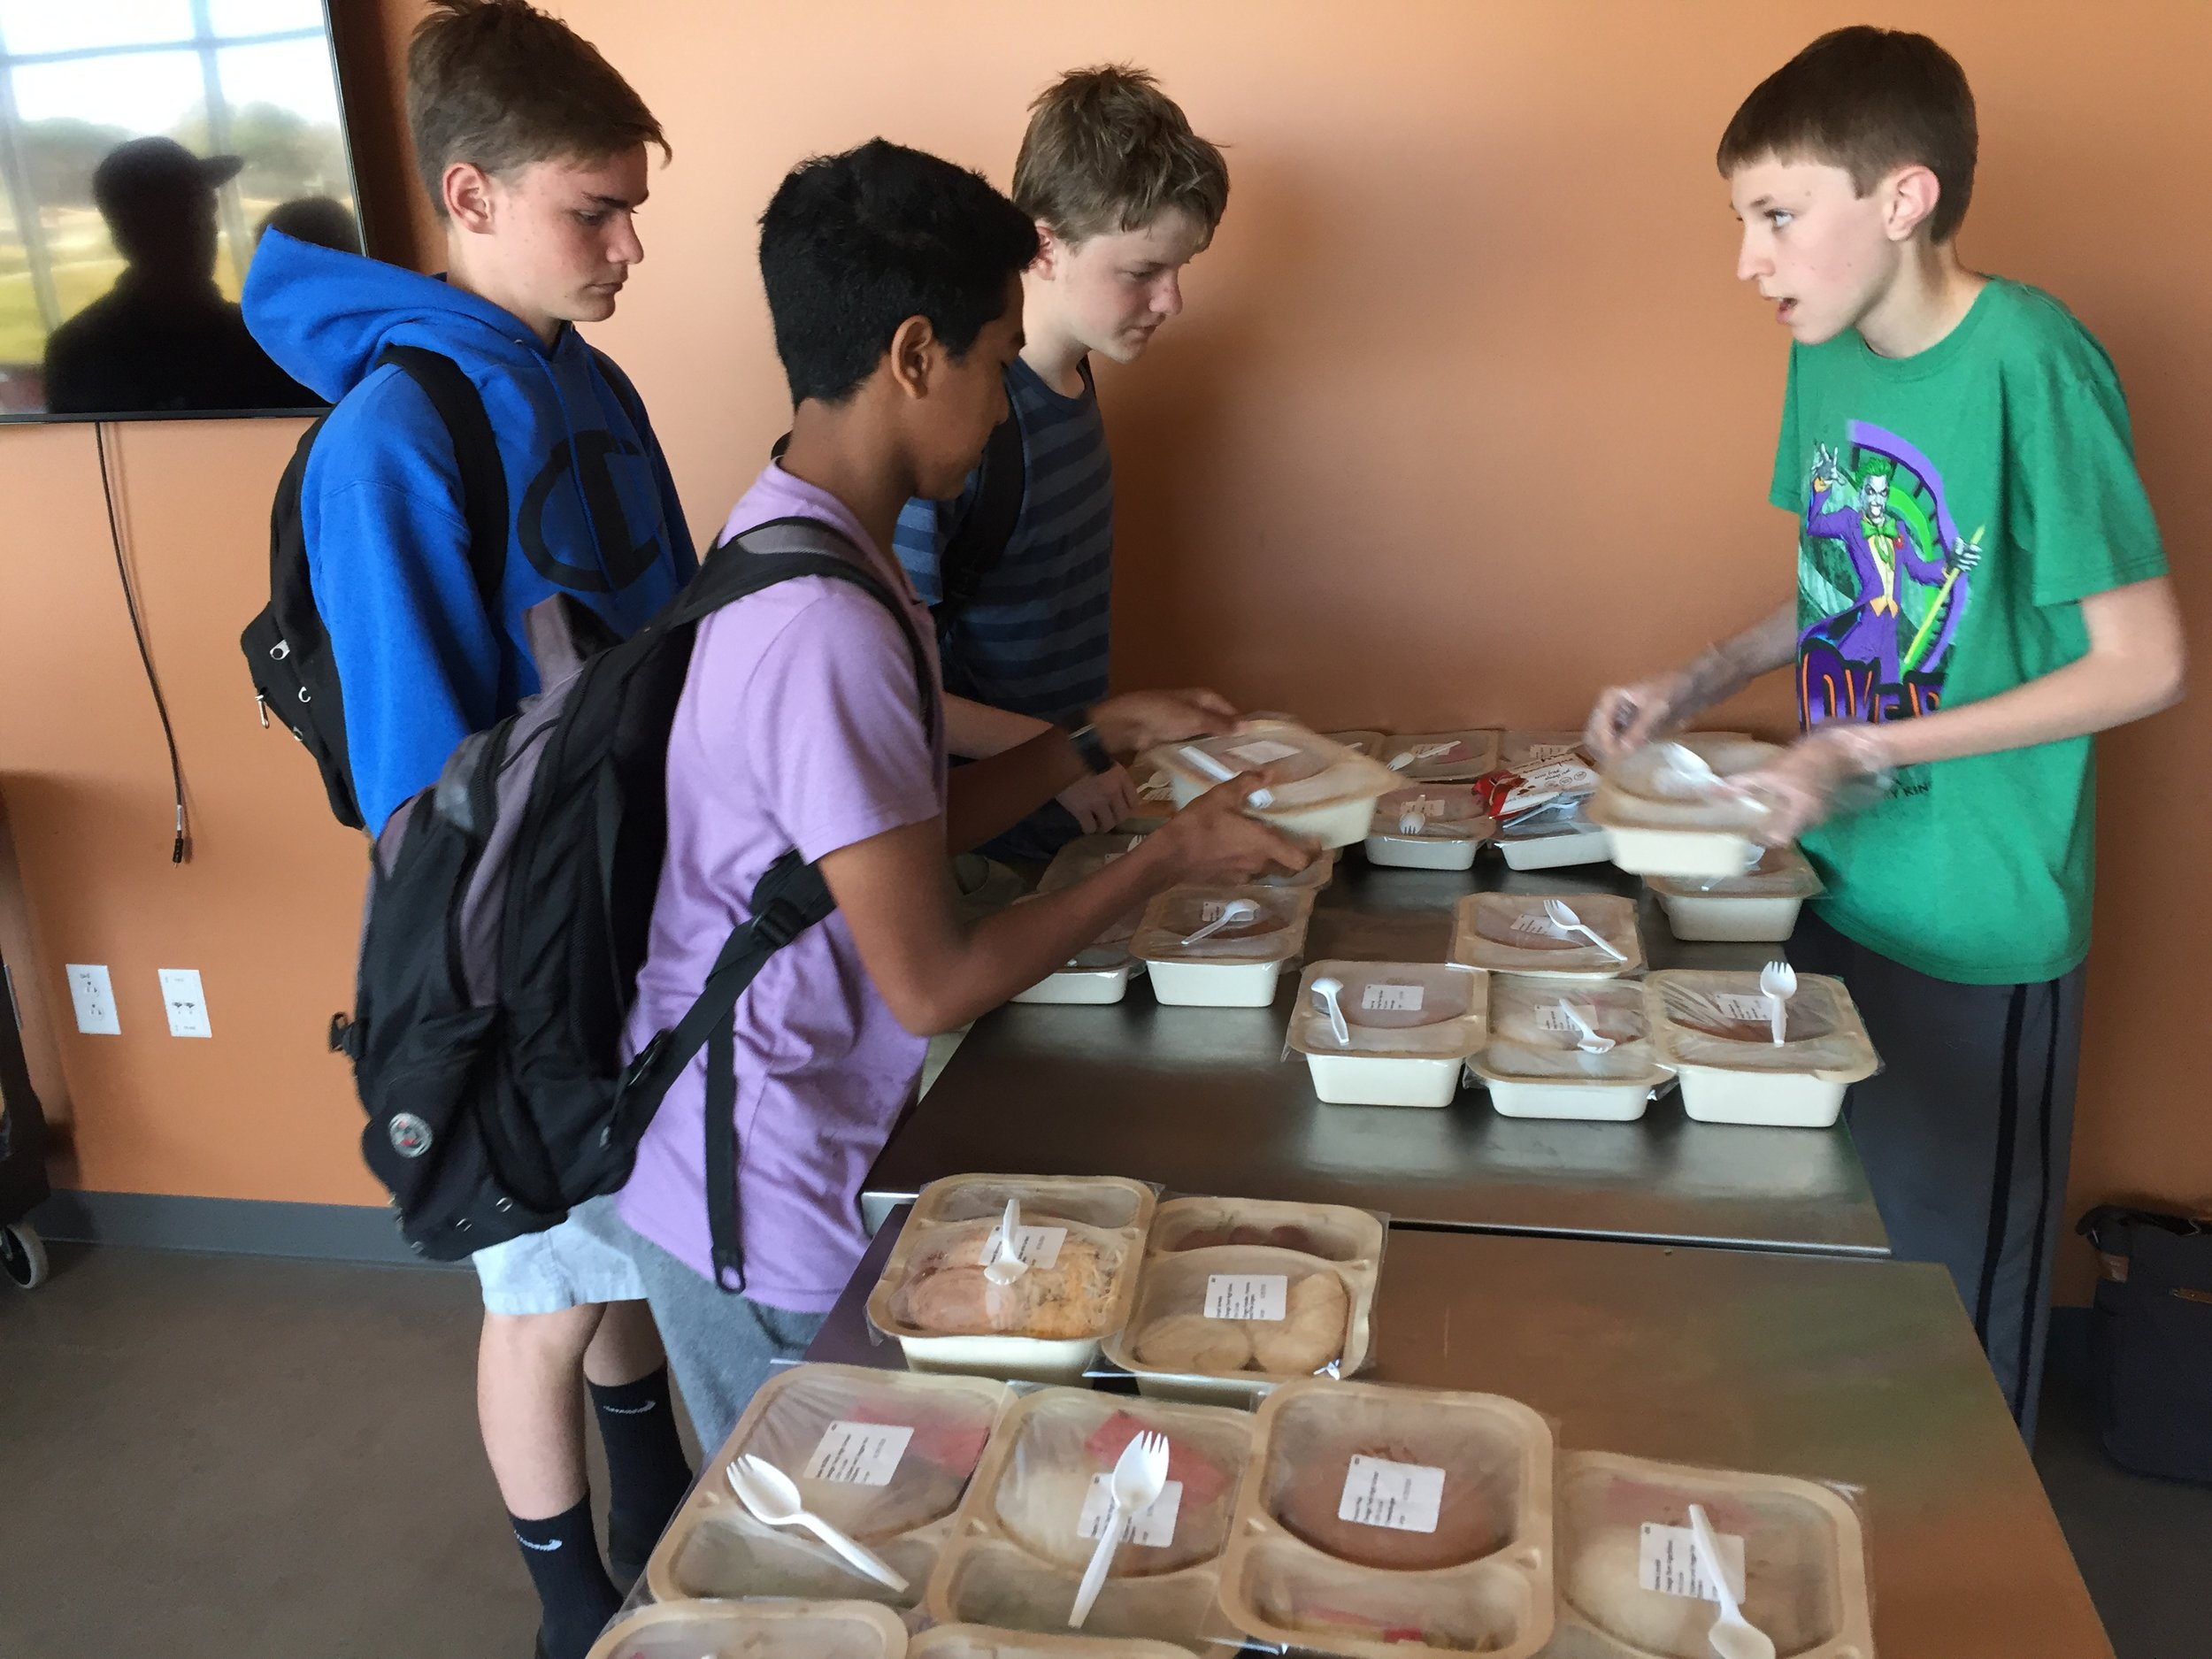 Time to Chill - Hot lunch, smash ball, ping pong, club meetings, music, and games! The 30-minute lunch period is about food, a break in the day, relaxing and connecting with others.